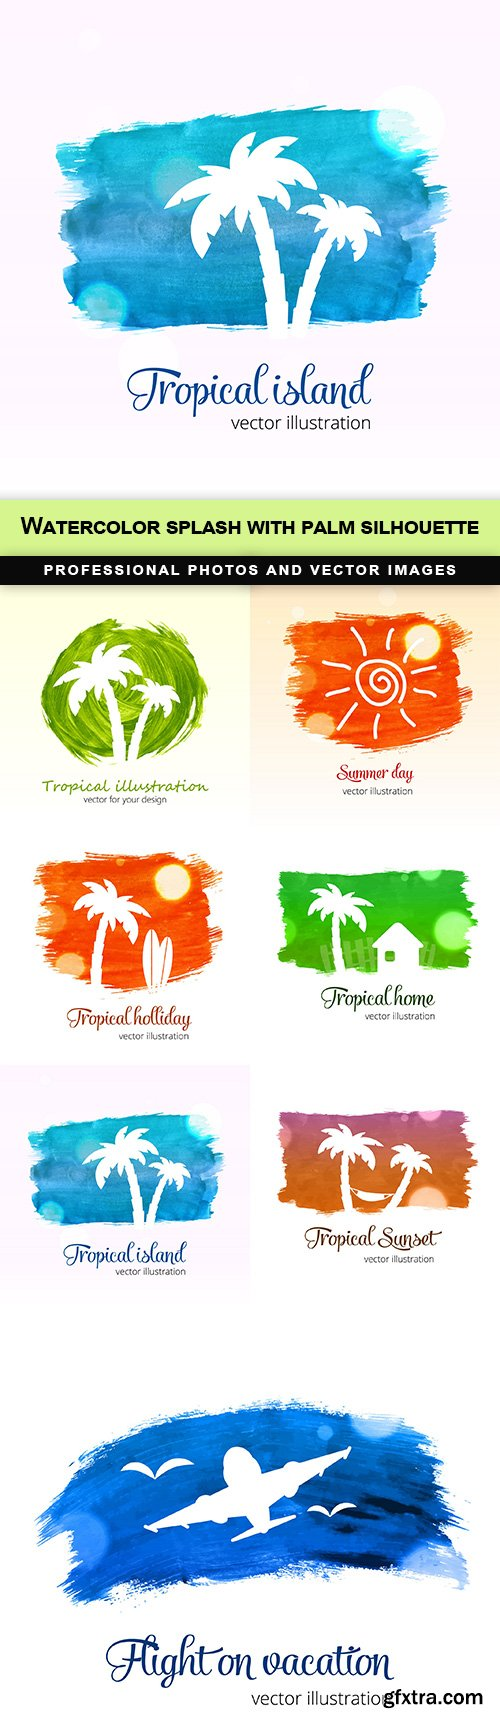 Watercolor splash with palm silhouette - 7 EPS